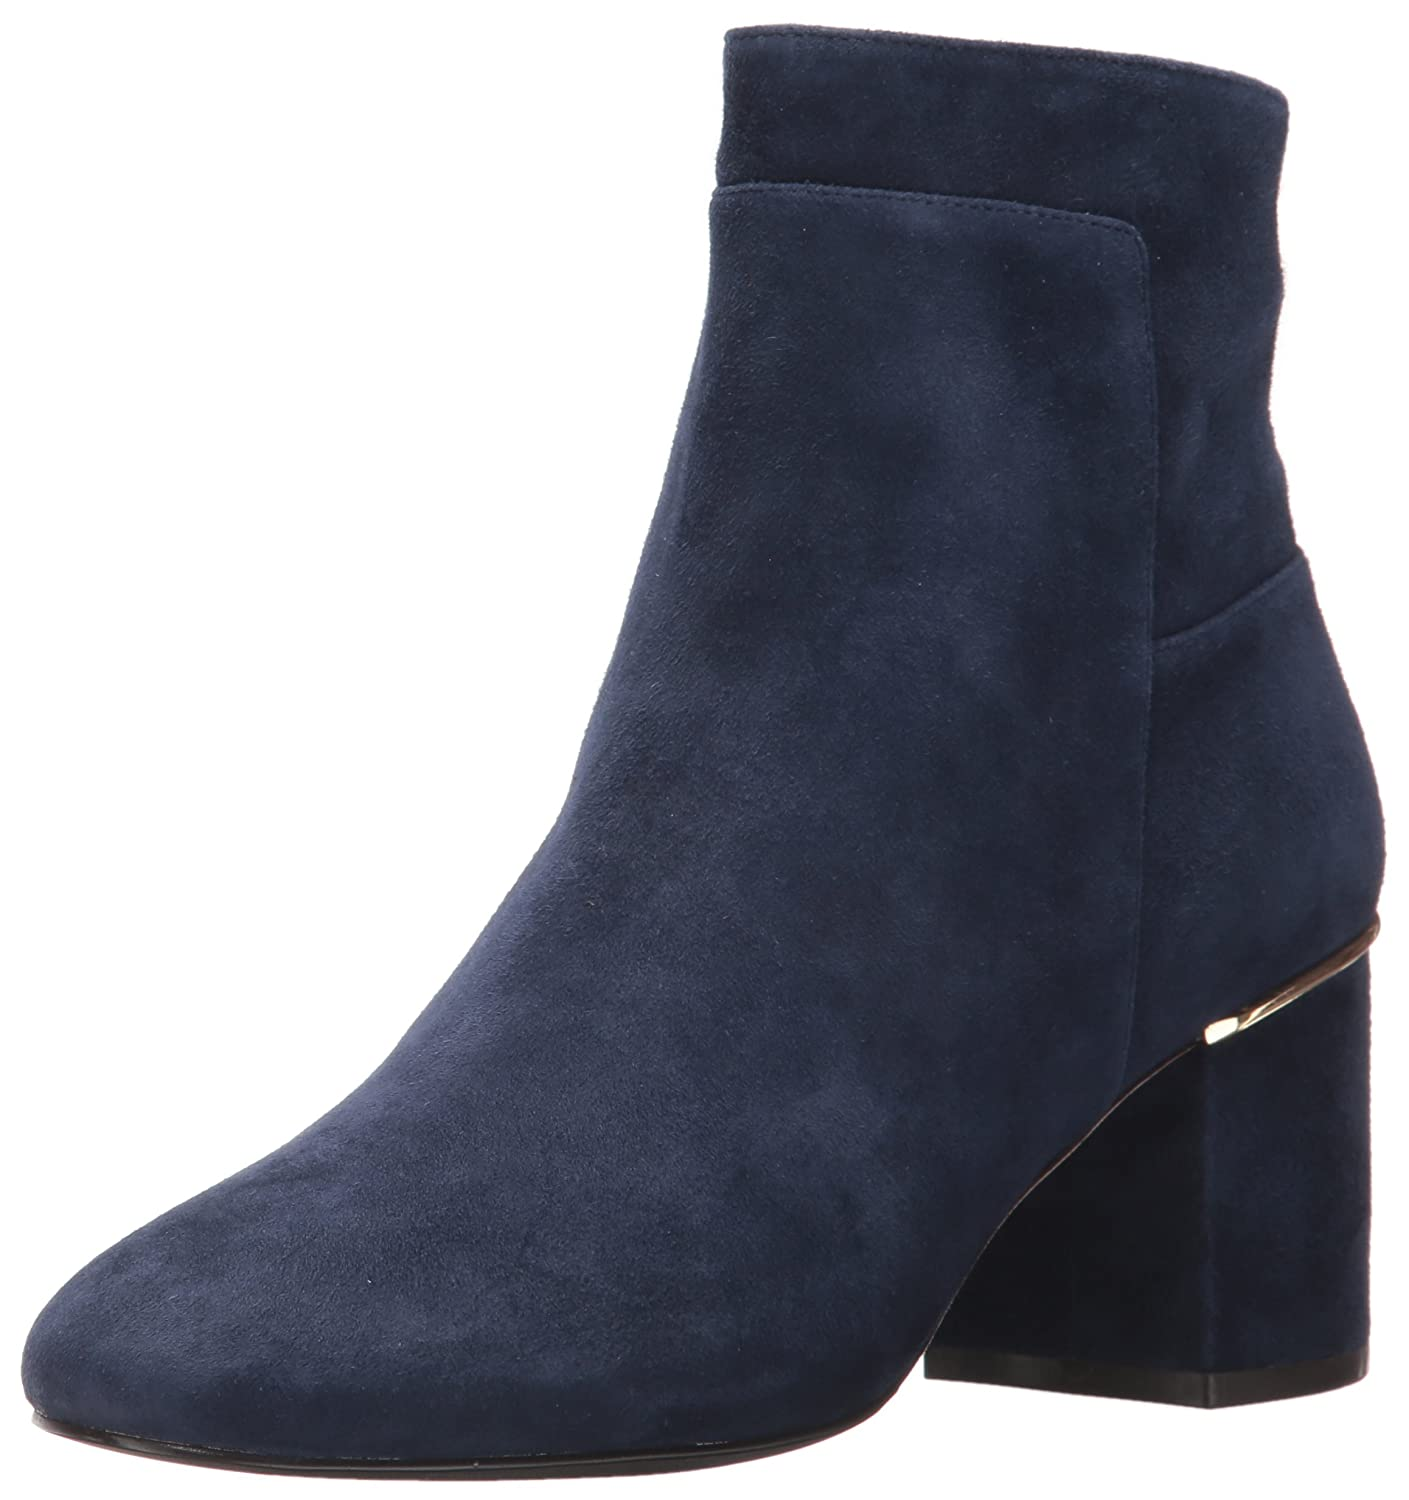 Cole Haan Women's Arden Grand Bootie Ankle Boot B01NBY6MCA 6.5 B(M) US|Marine Blue